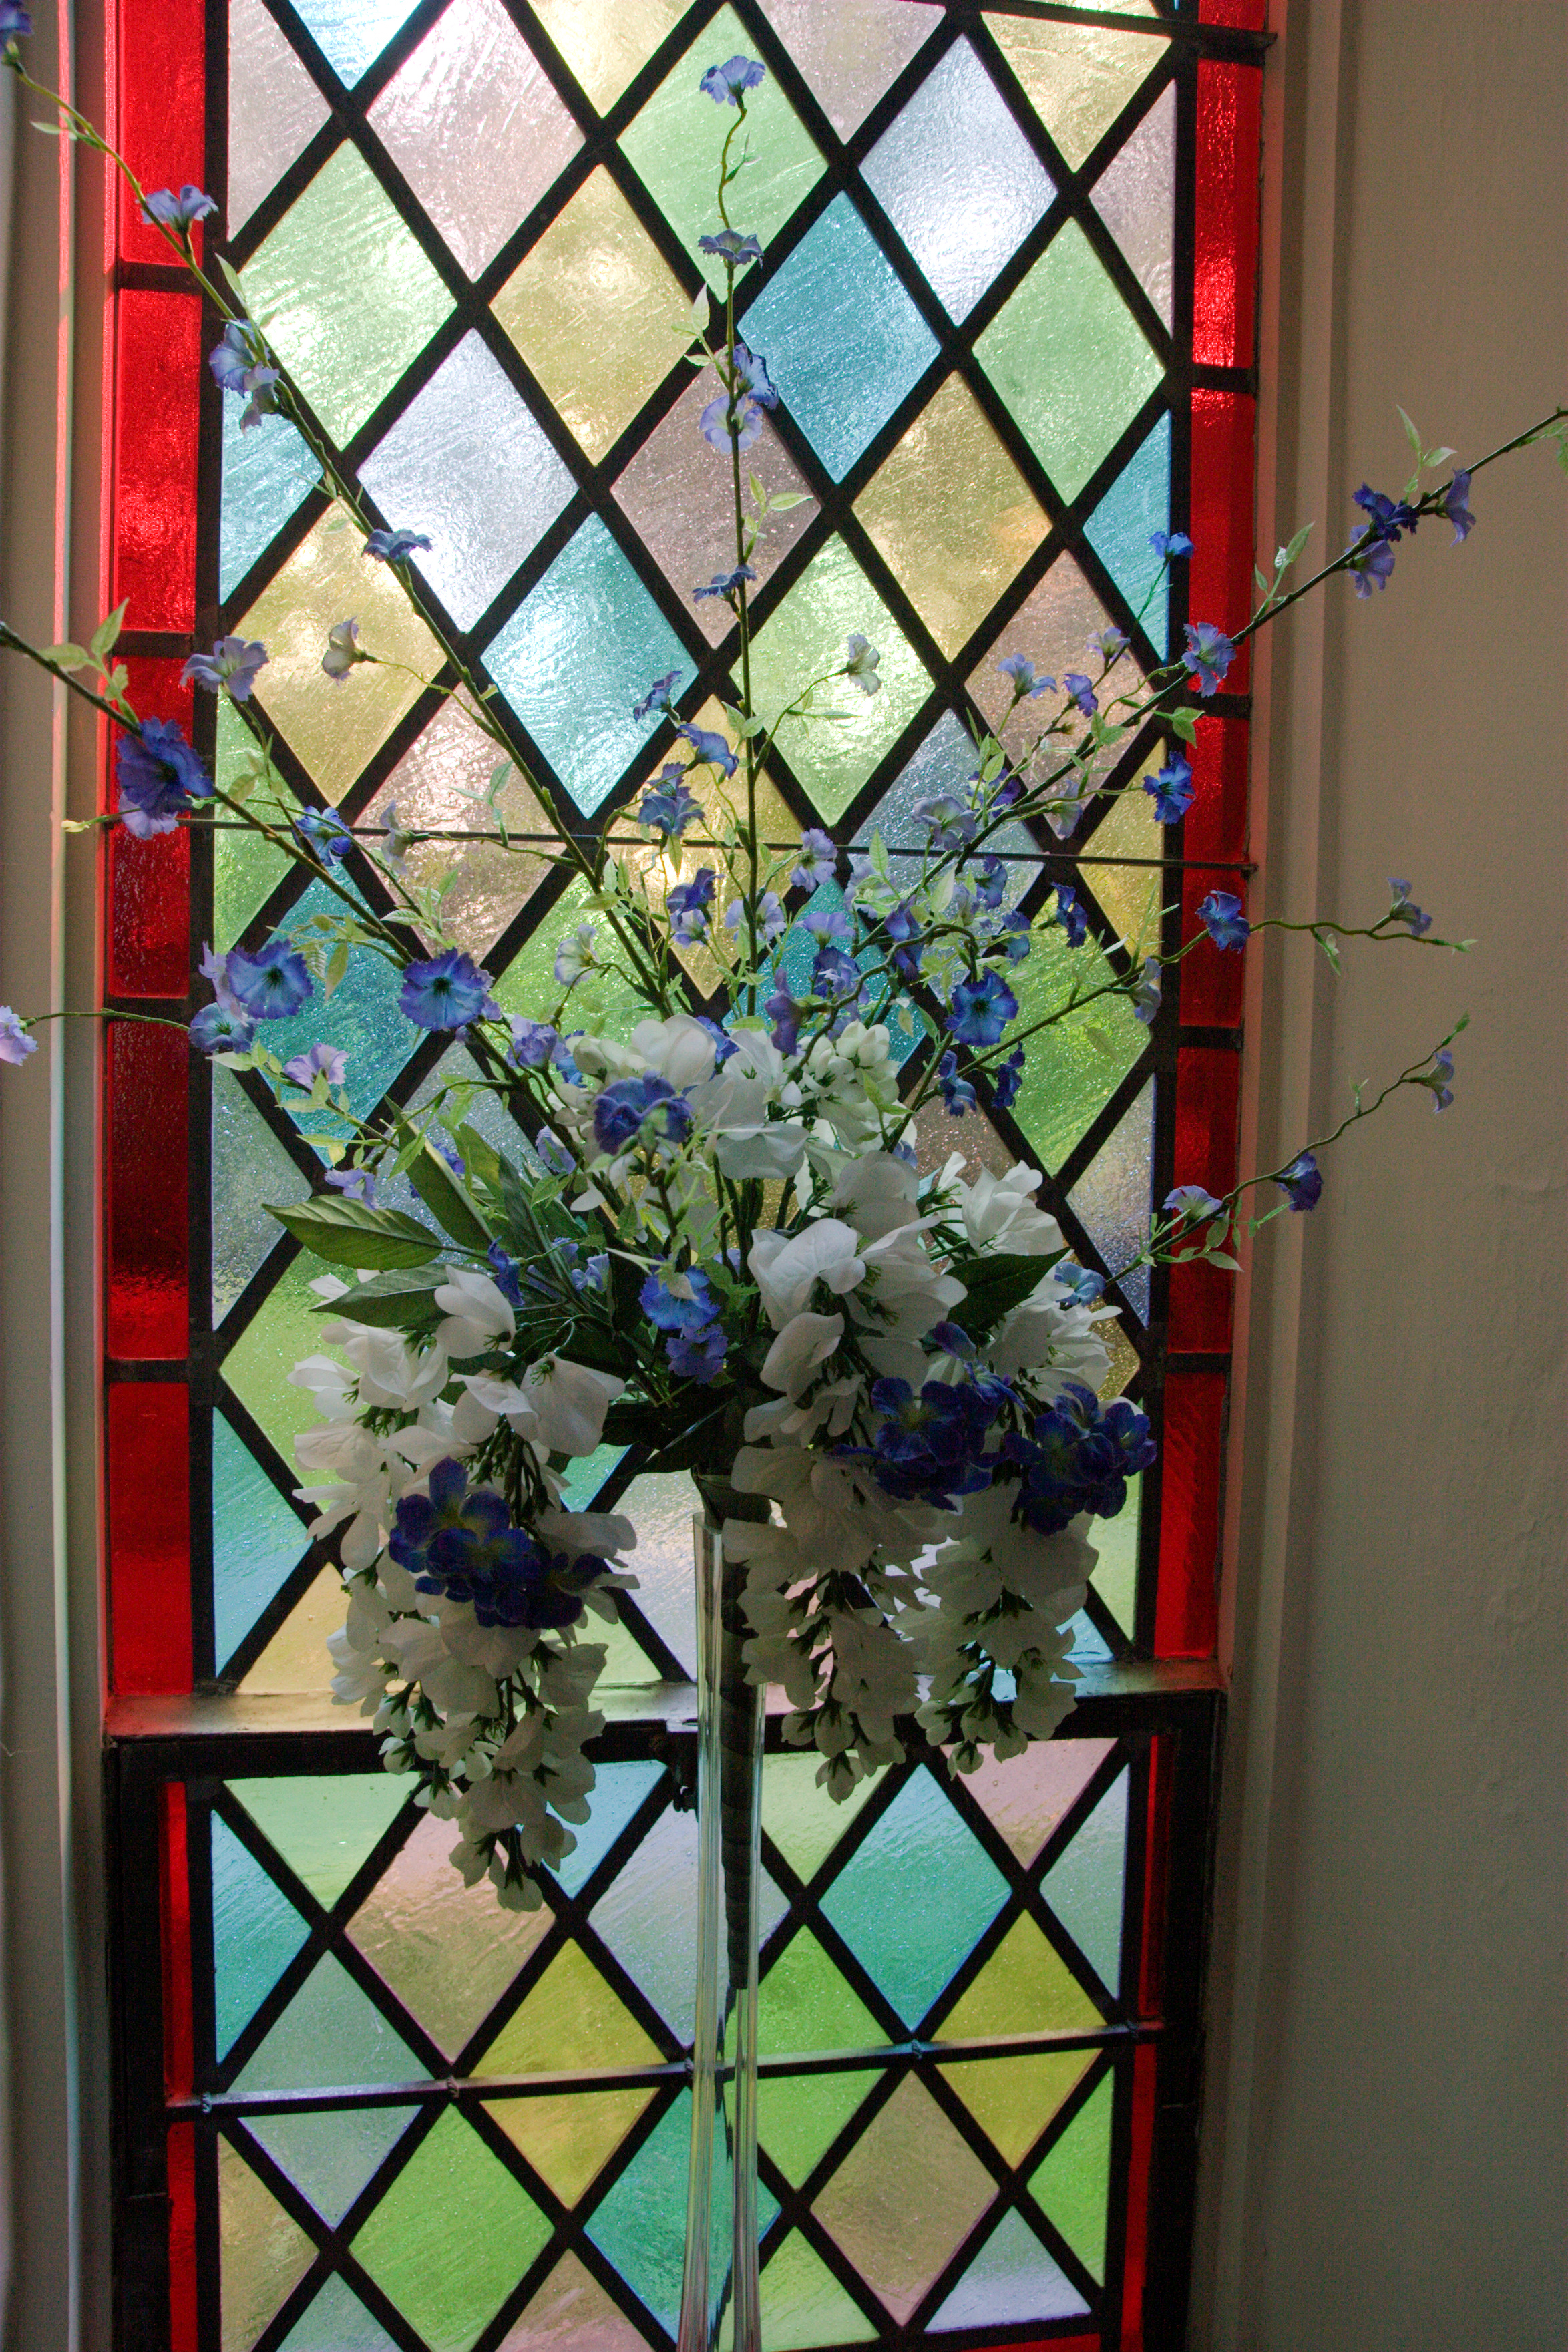 Flowers in front of window